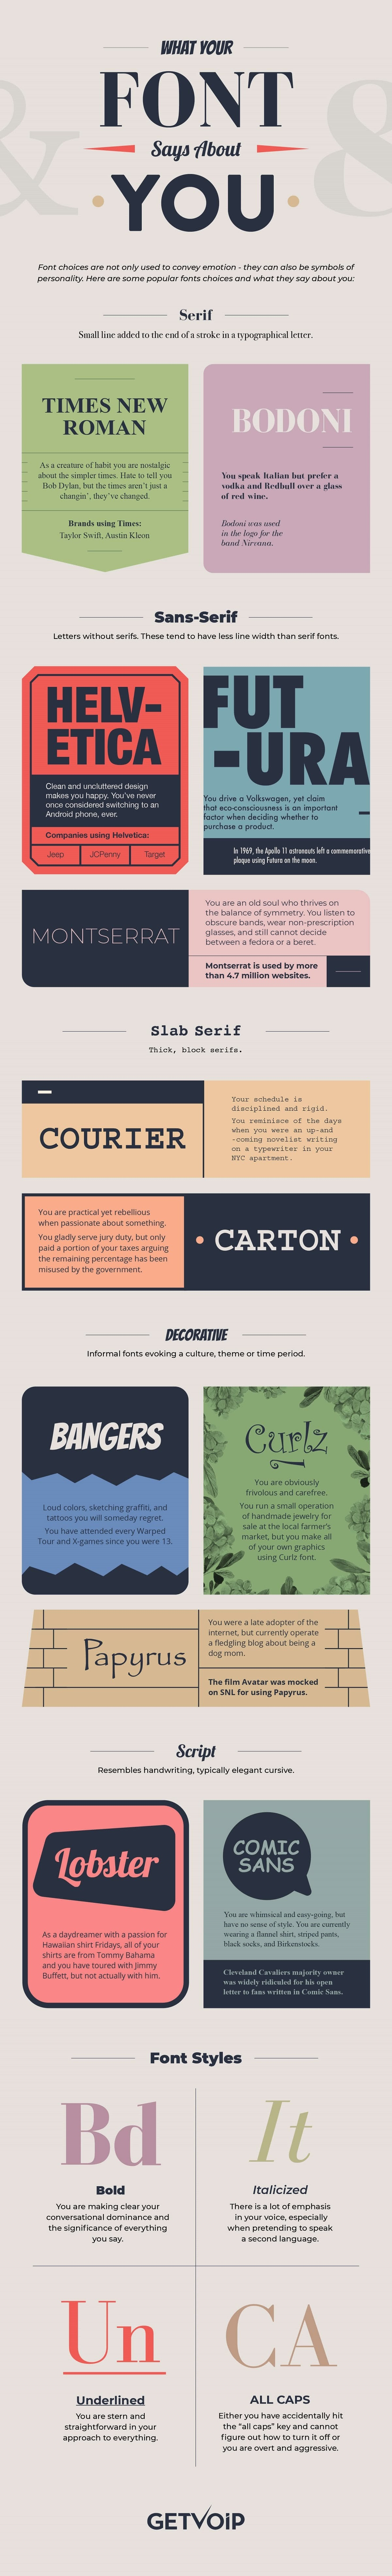 What Your Font Says About You